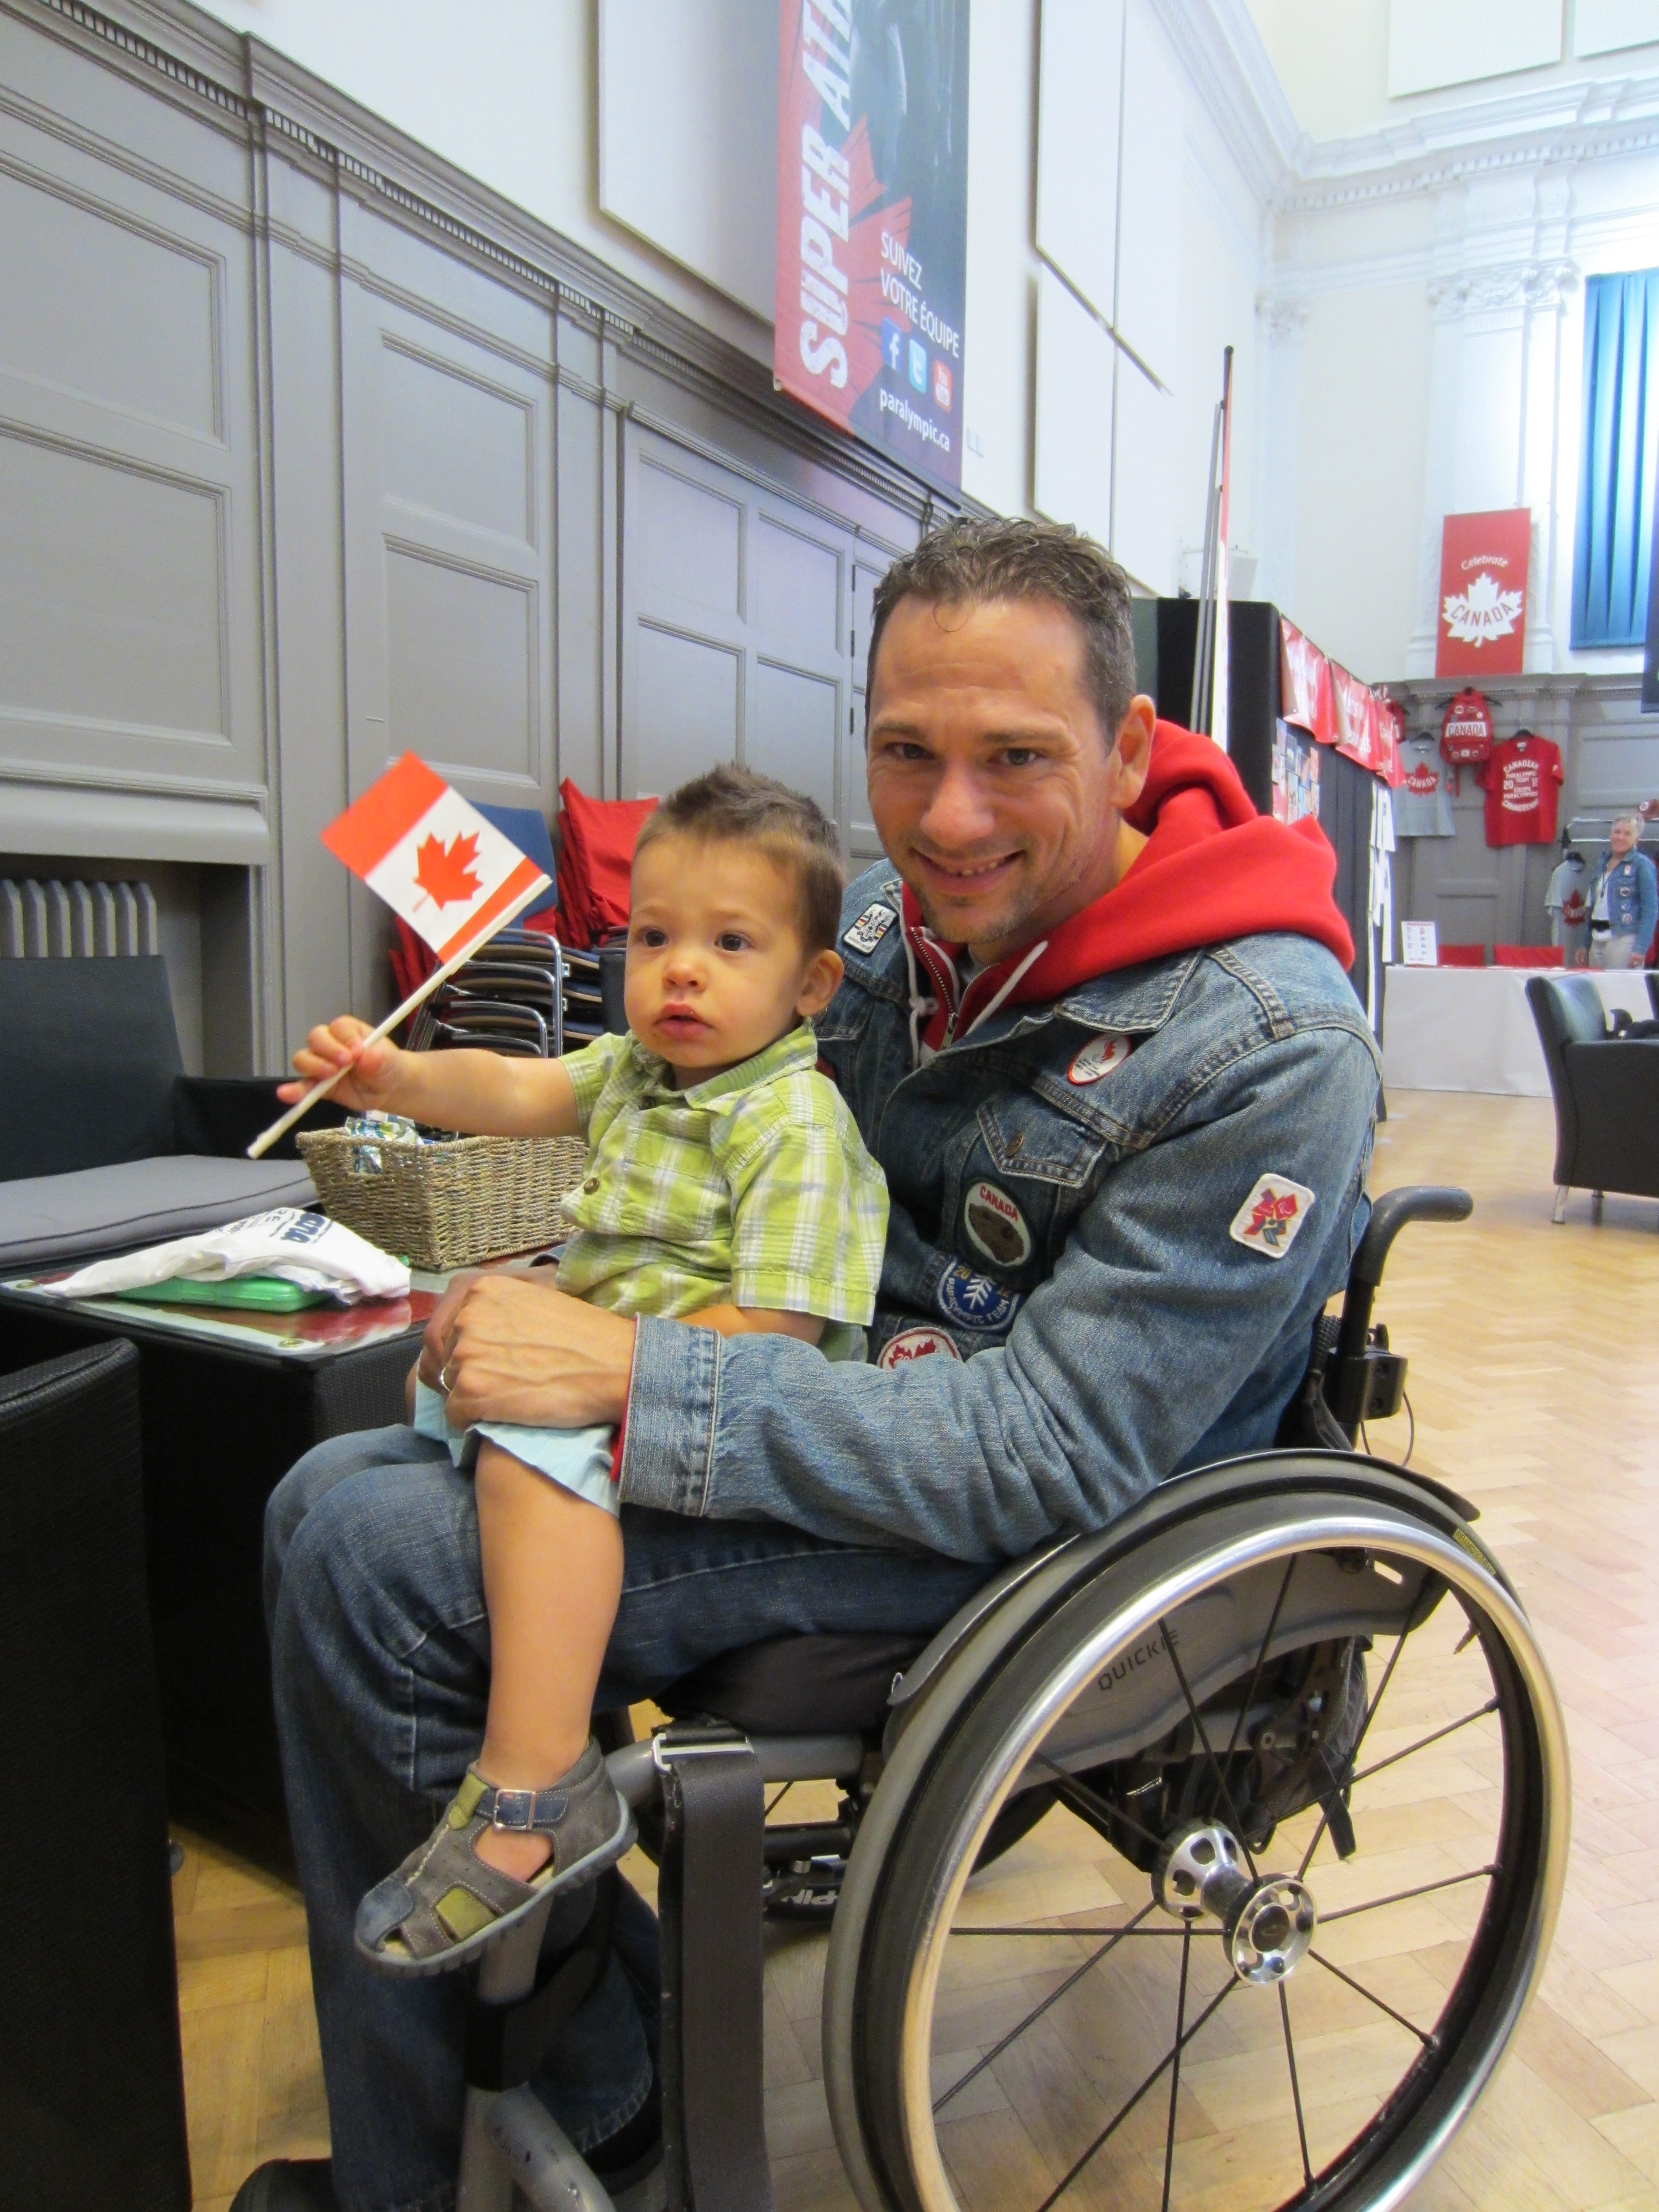 Man in a wheelchair with a kid on his lap